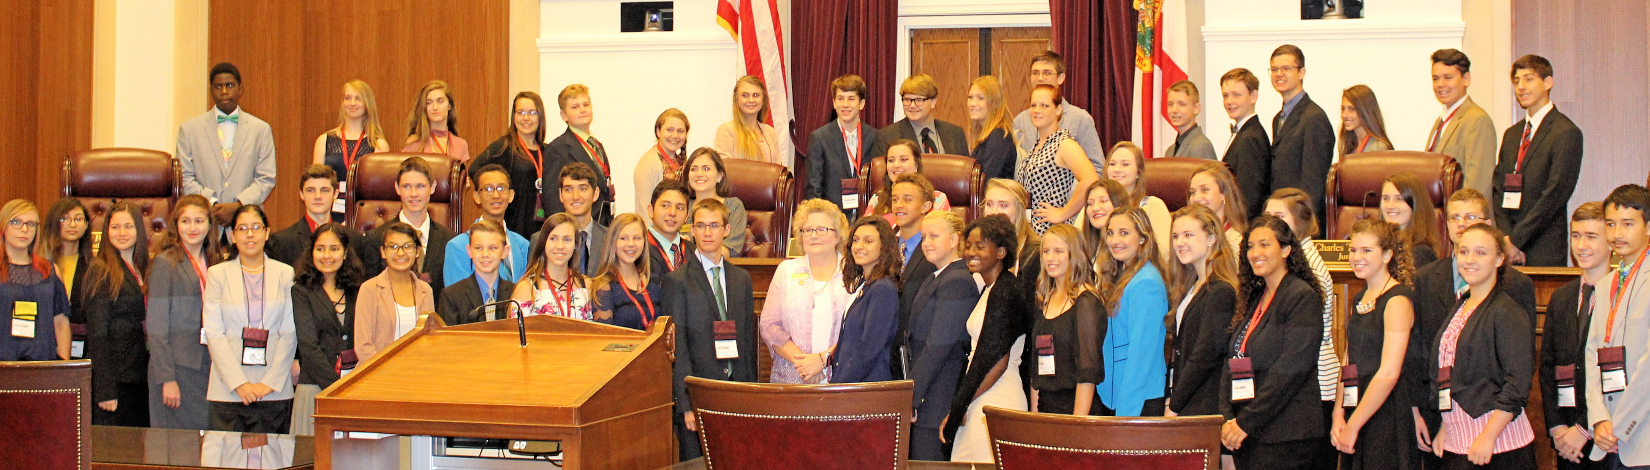 4-H youth at the Florida Supreme Court